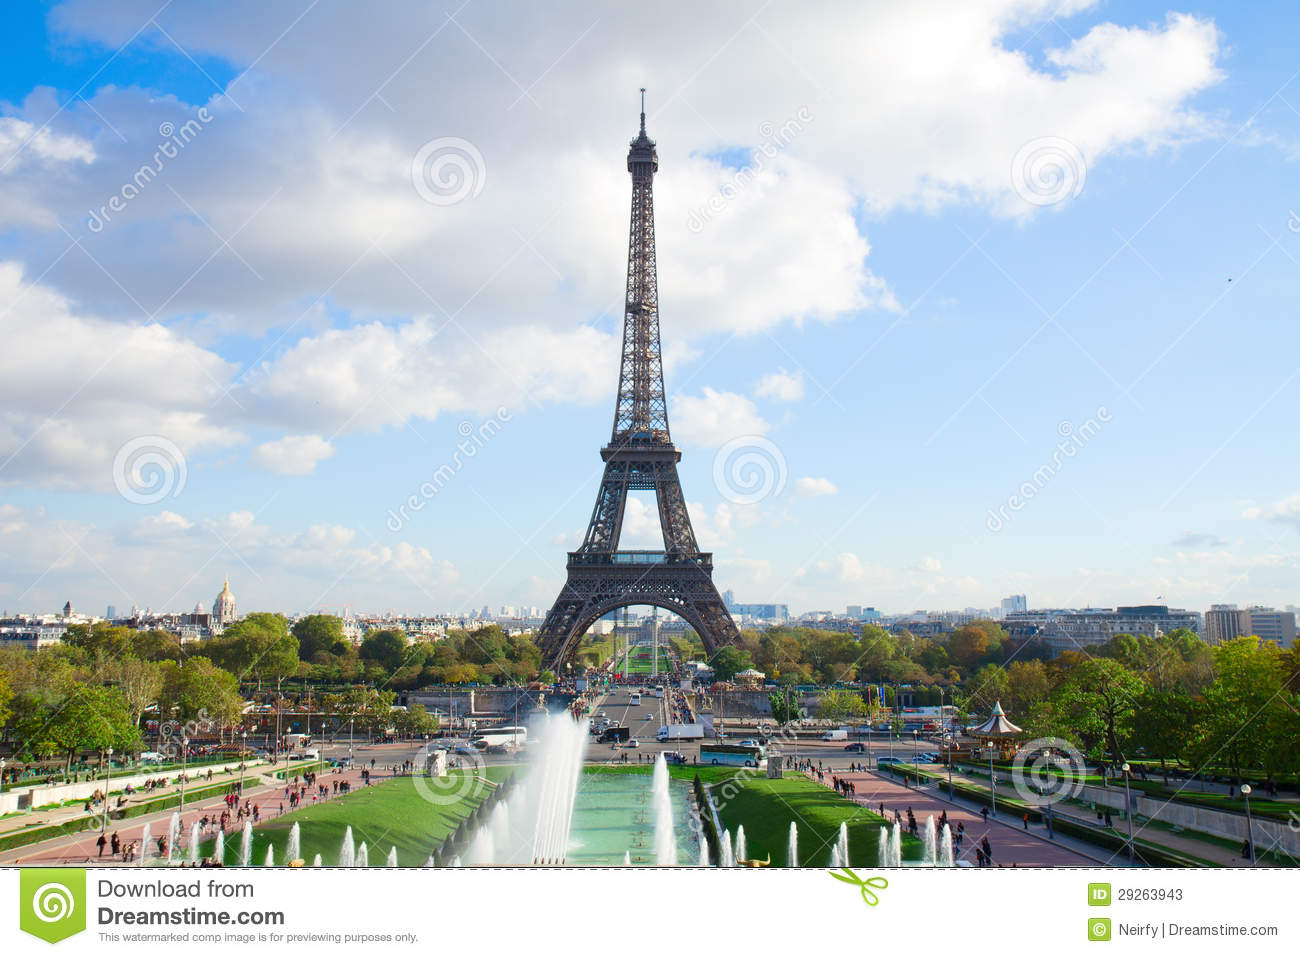 Download Eiffel Tour And Fountains Of Trocadero Stock Image - Image of scenic, blue: 29263943